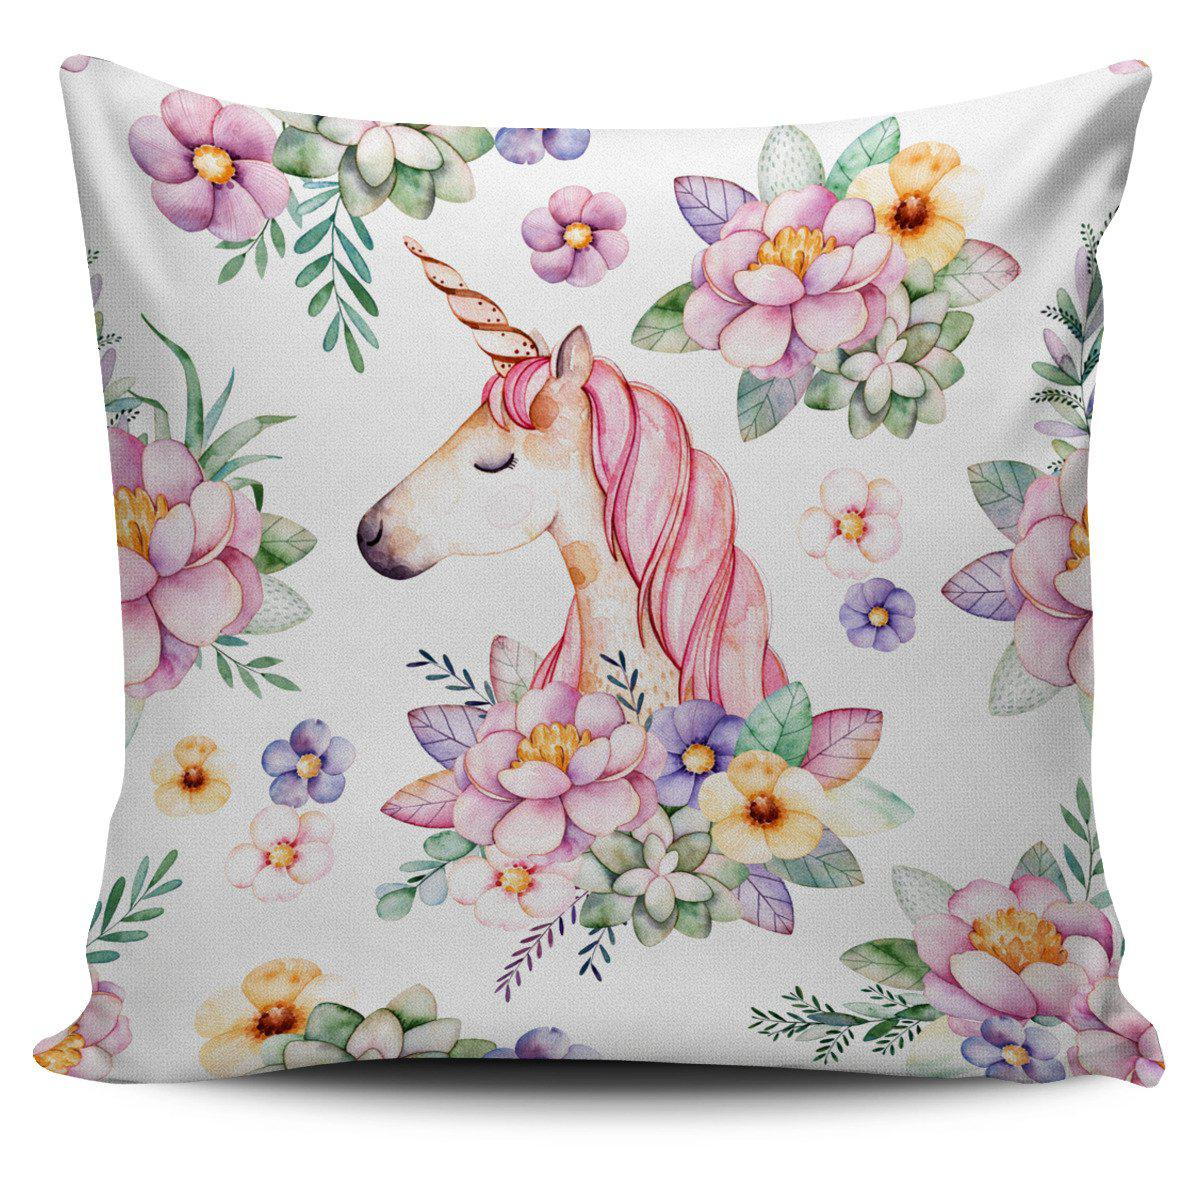 Shopeholic:Unicorn Floral Pillow Cover